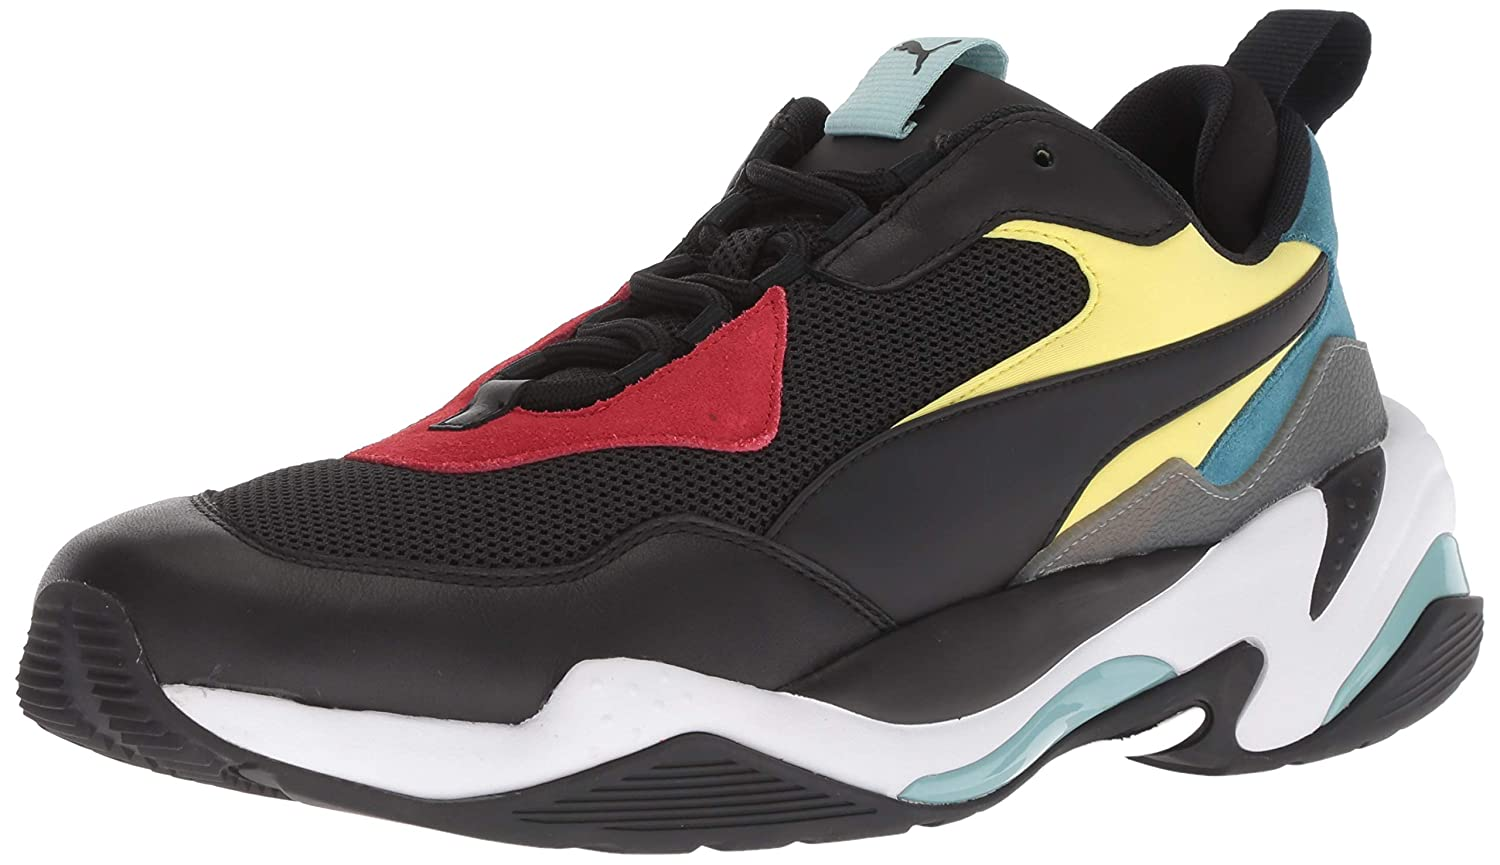 buy popular 2f69c 4666b Amazon.com   PUMA Men s Thunder Spectra Sneaker   Fashion Sneakers